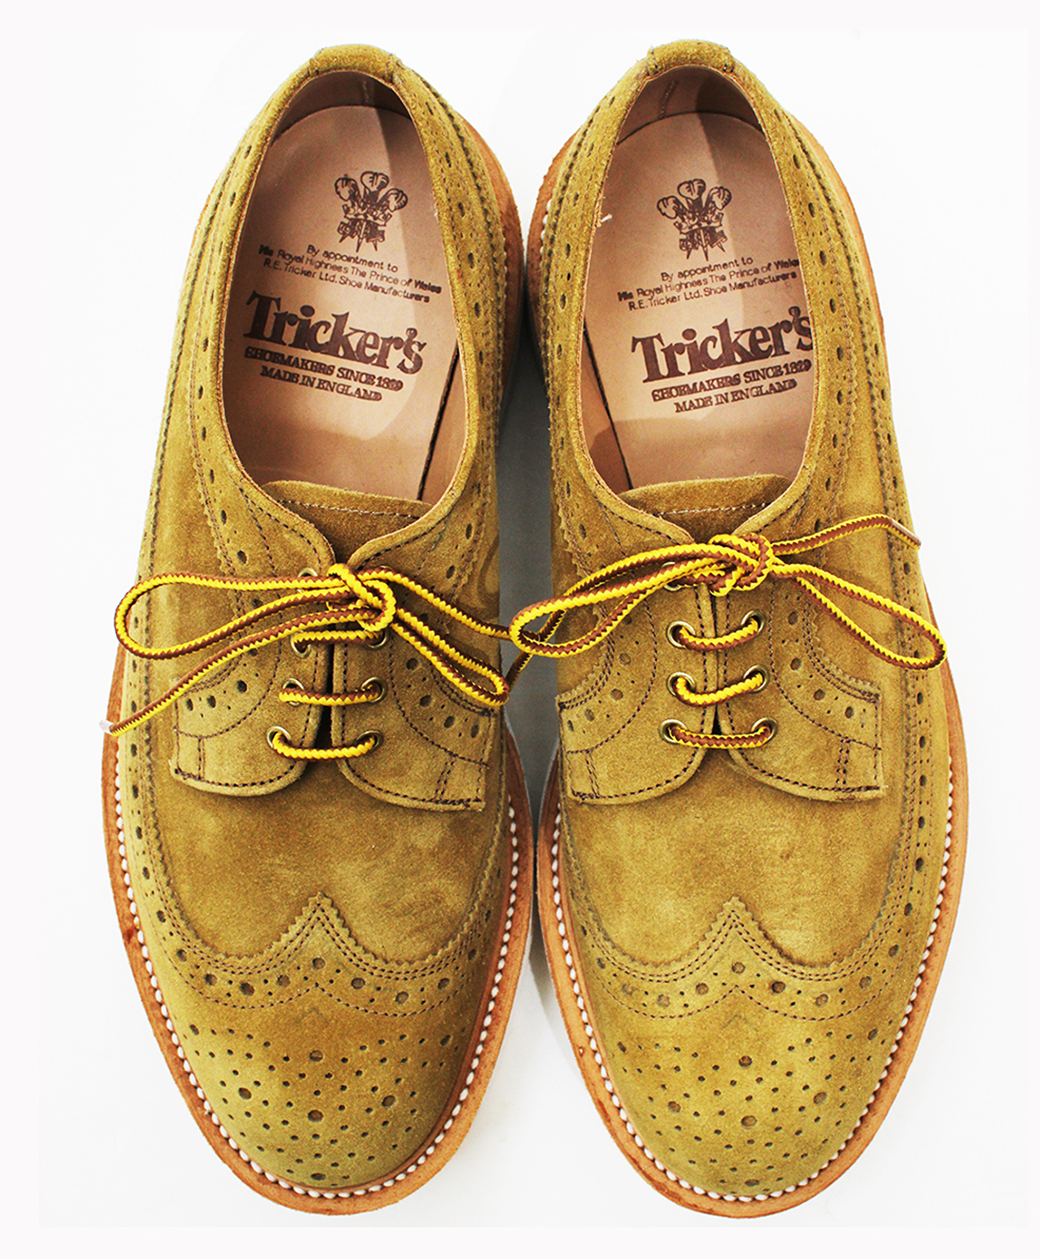 Tricker's M7306 Bloch Repello Suede Golosh Brogue(Marraca)